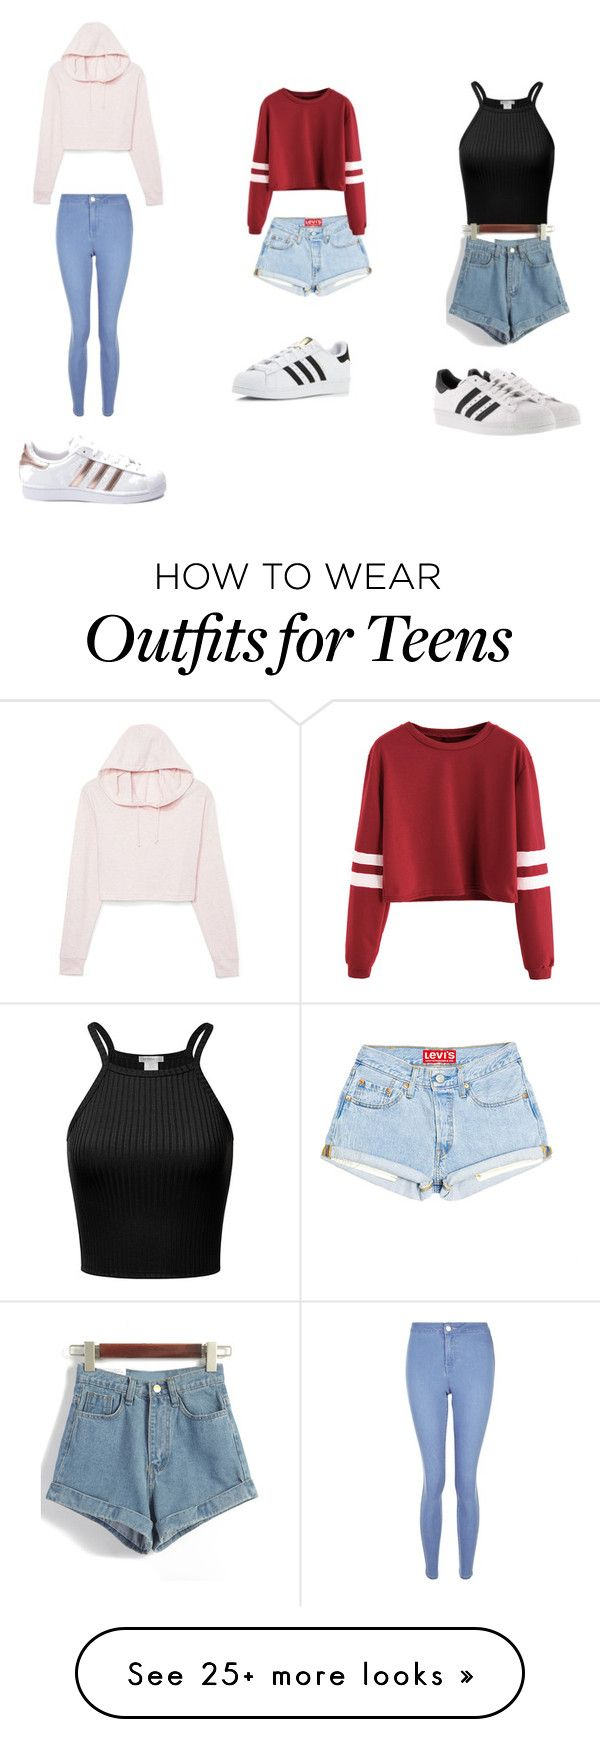 """Untitled #1"" by jaeschketaylah on Polyvore featuring New Look and adidas"